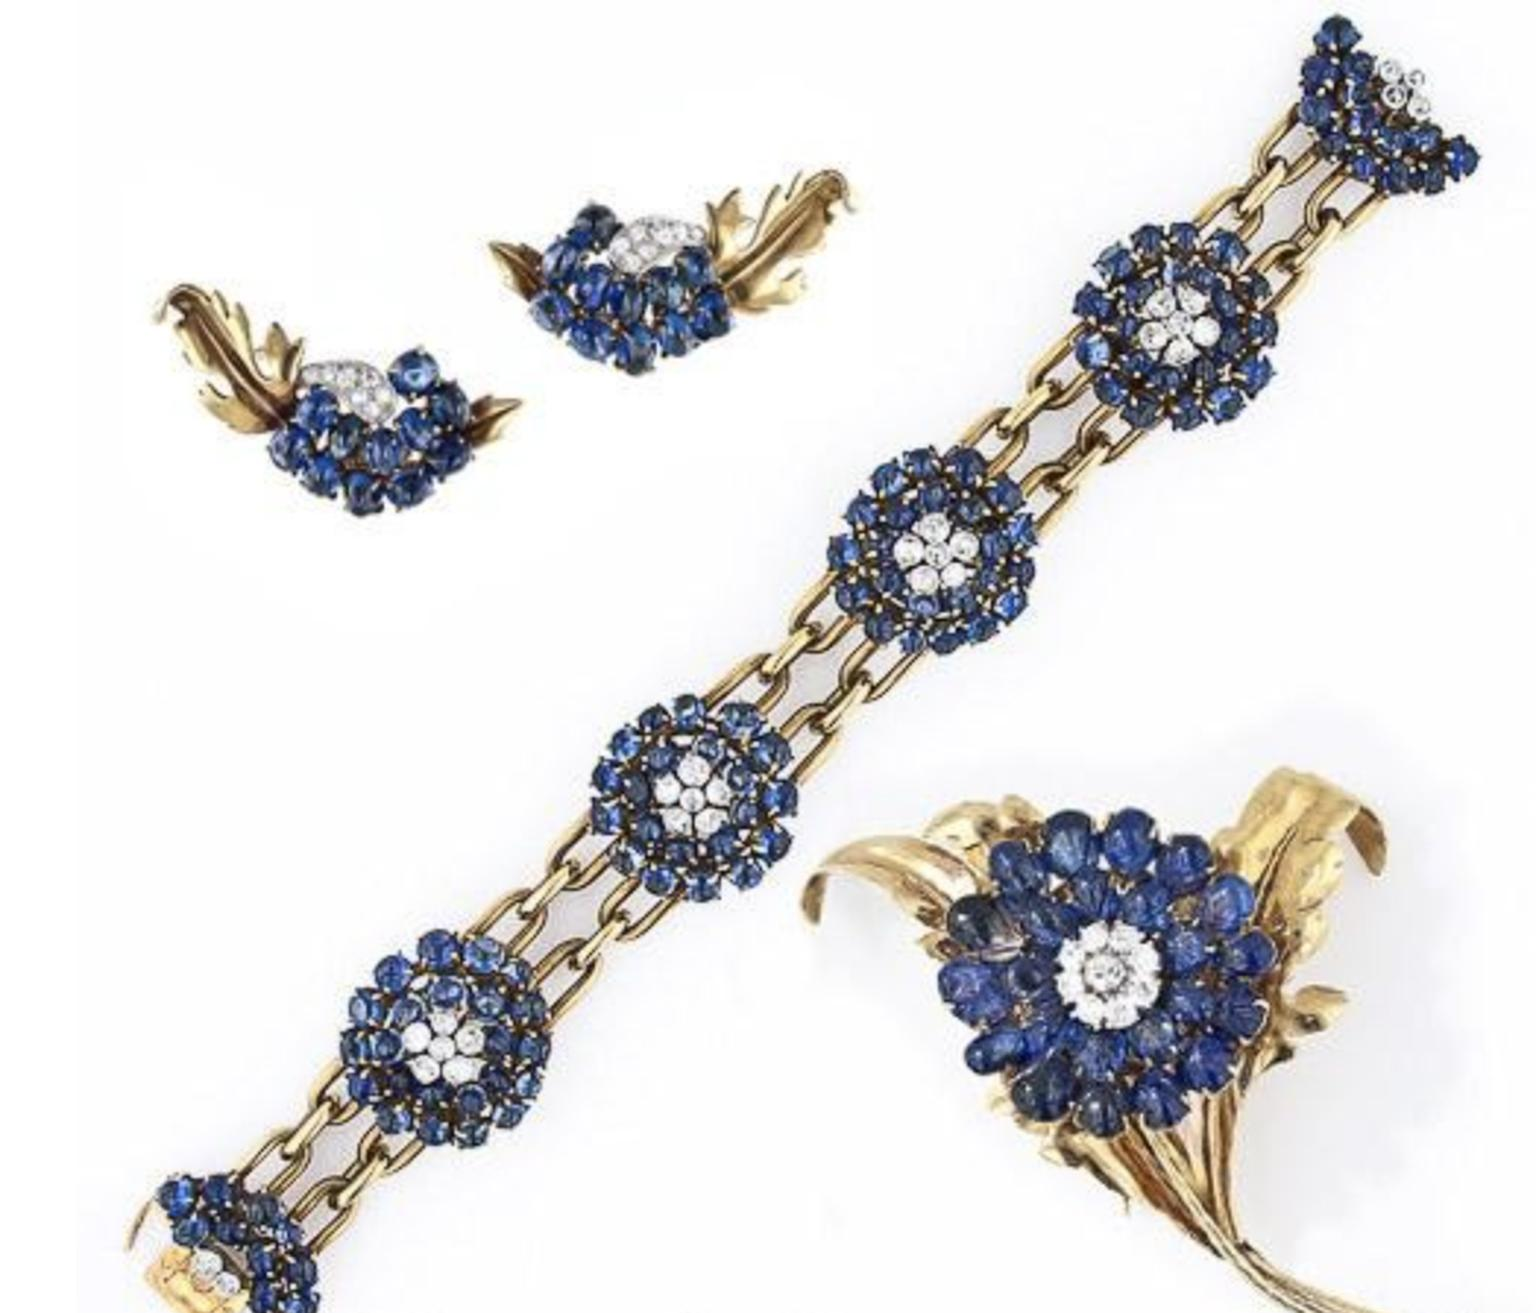 Chaulmet sapphire pin, bracelet and earrings suite sold by Lang Antiques